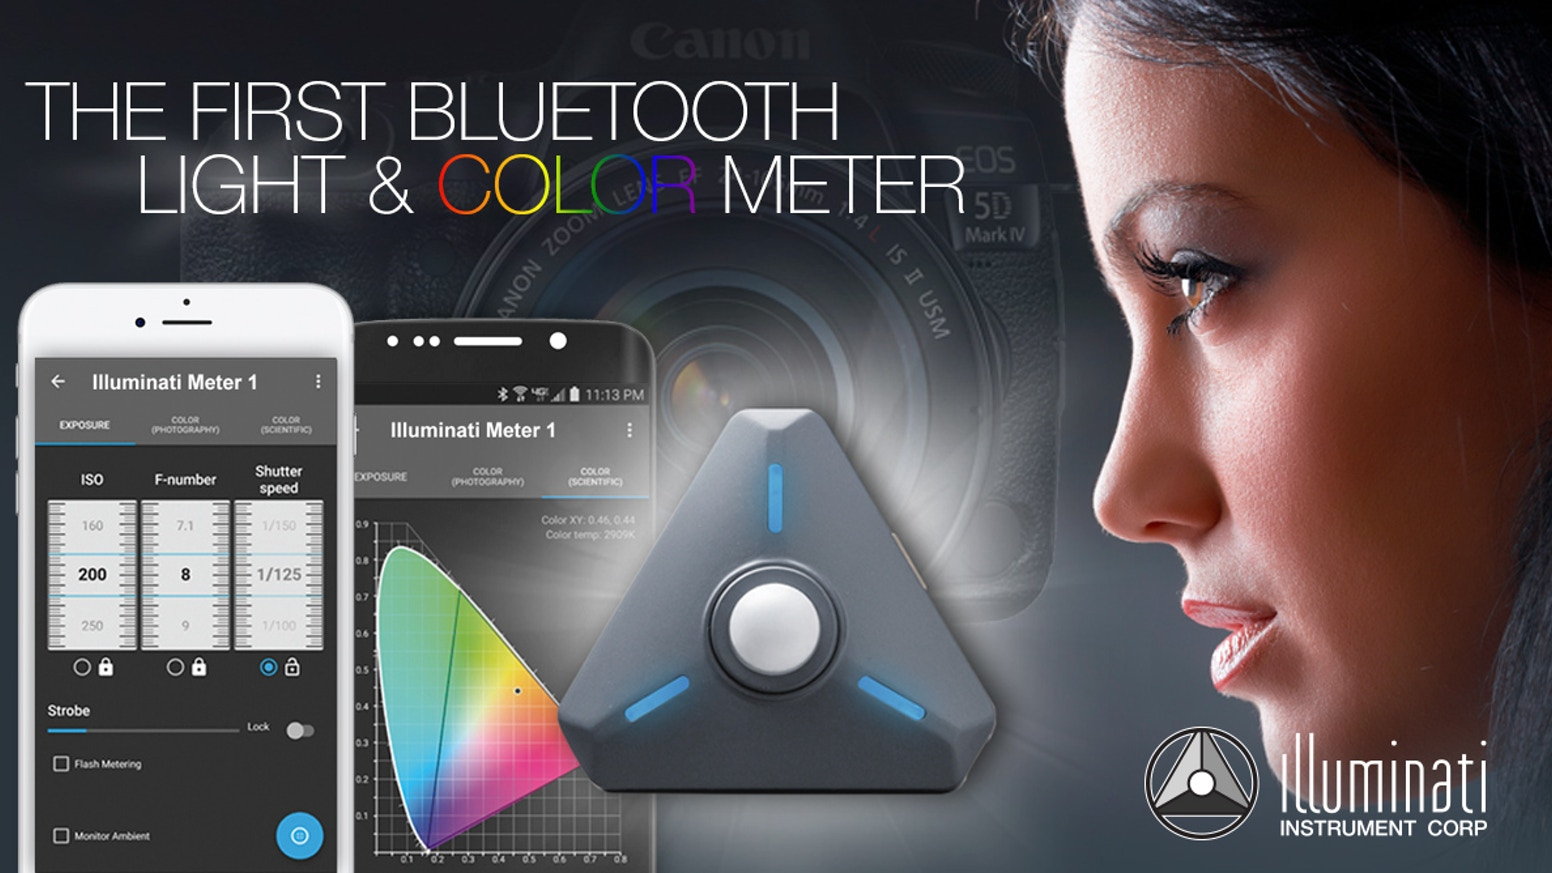 Illuminati Wireless Light & Color Meter for Photo & Video by Michael